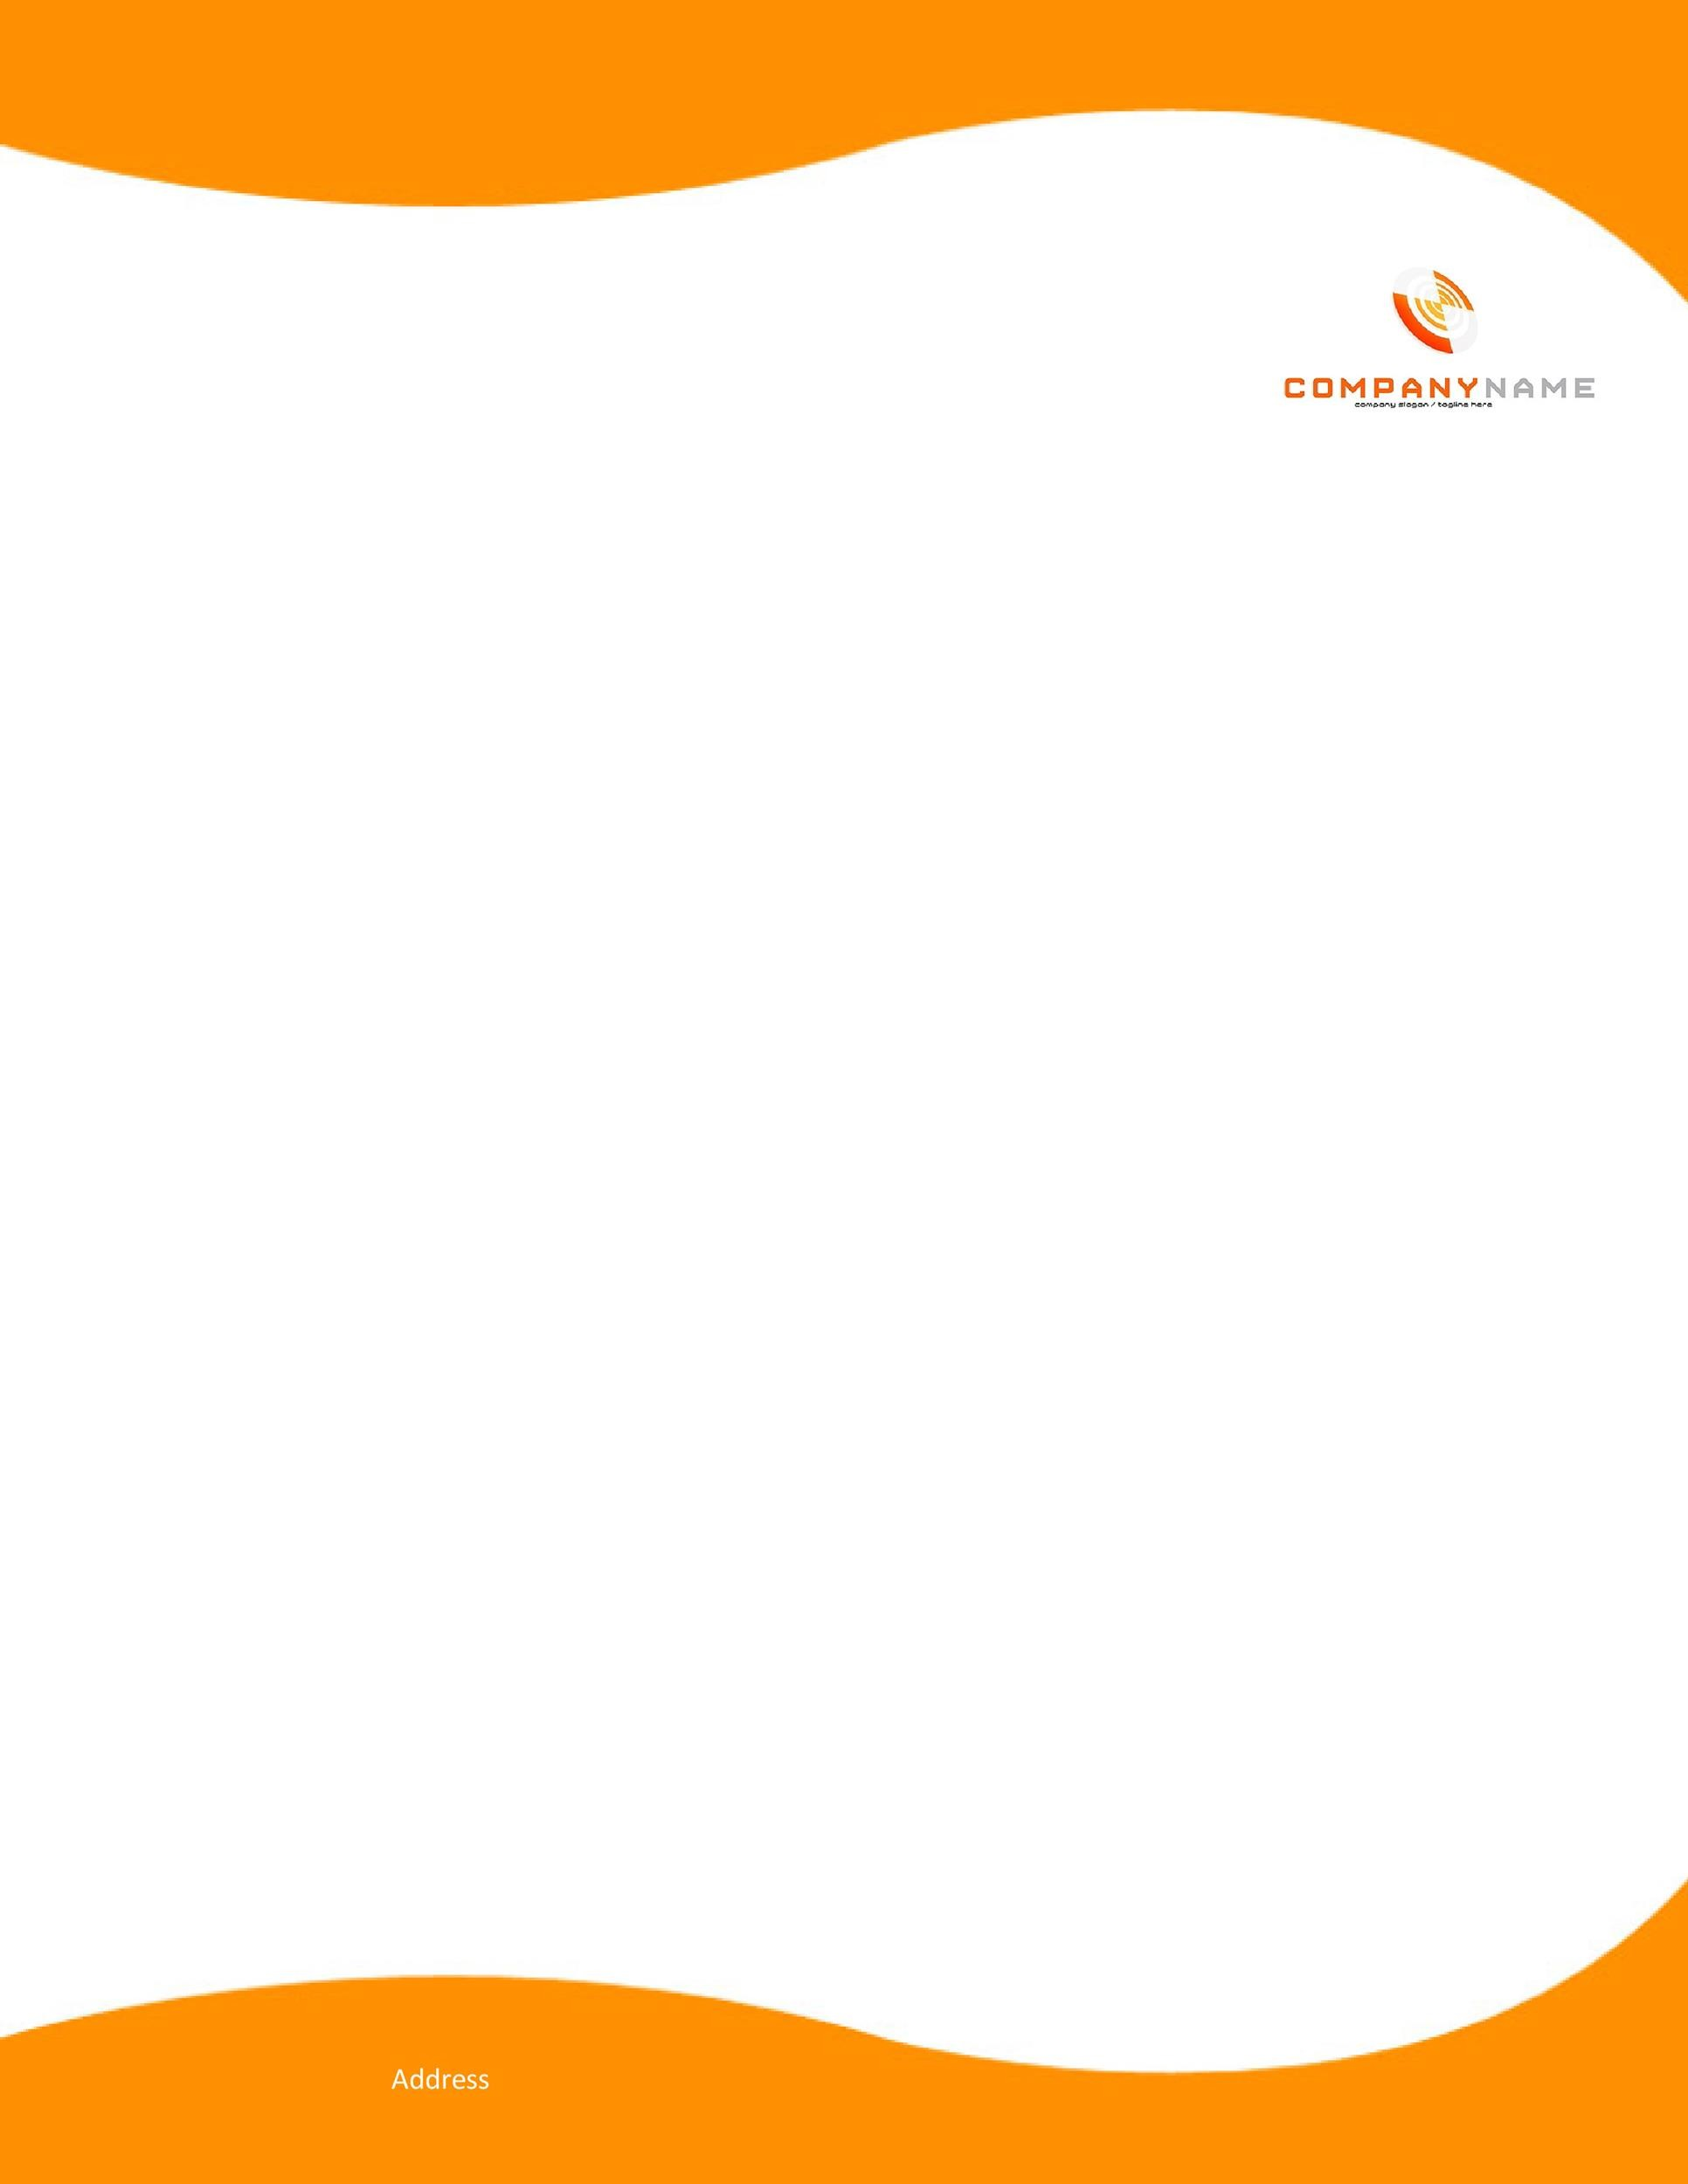 Printable Letterhead Template Word 01  Company Letterhead Samples